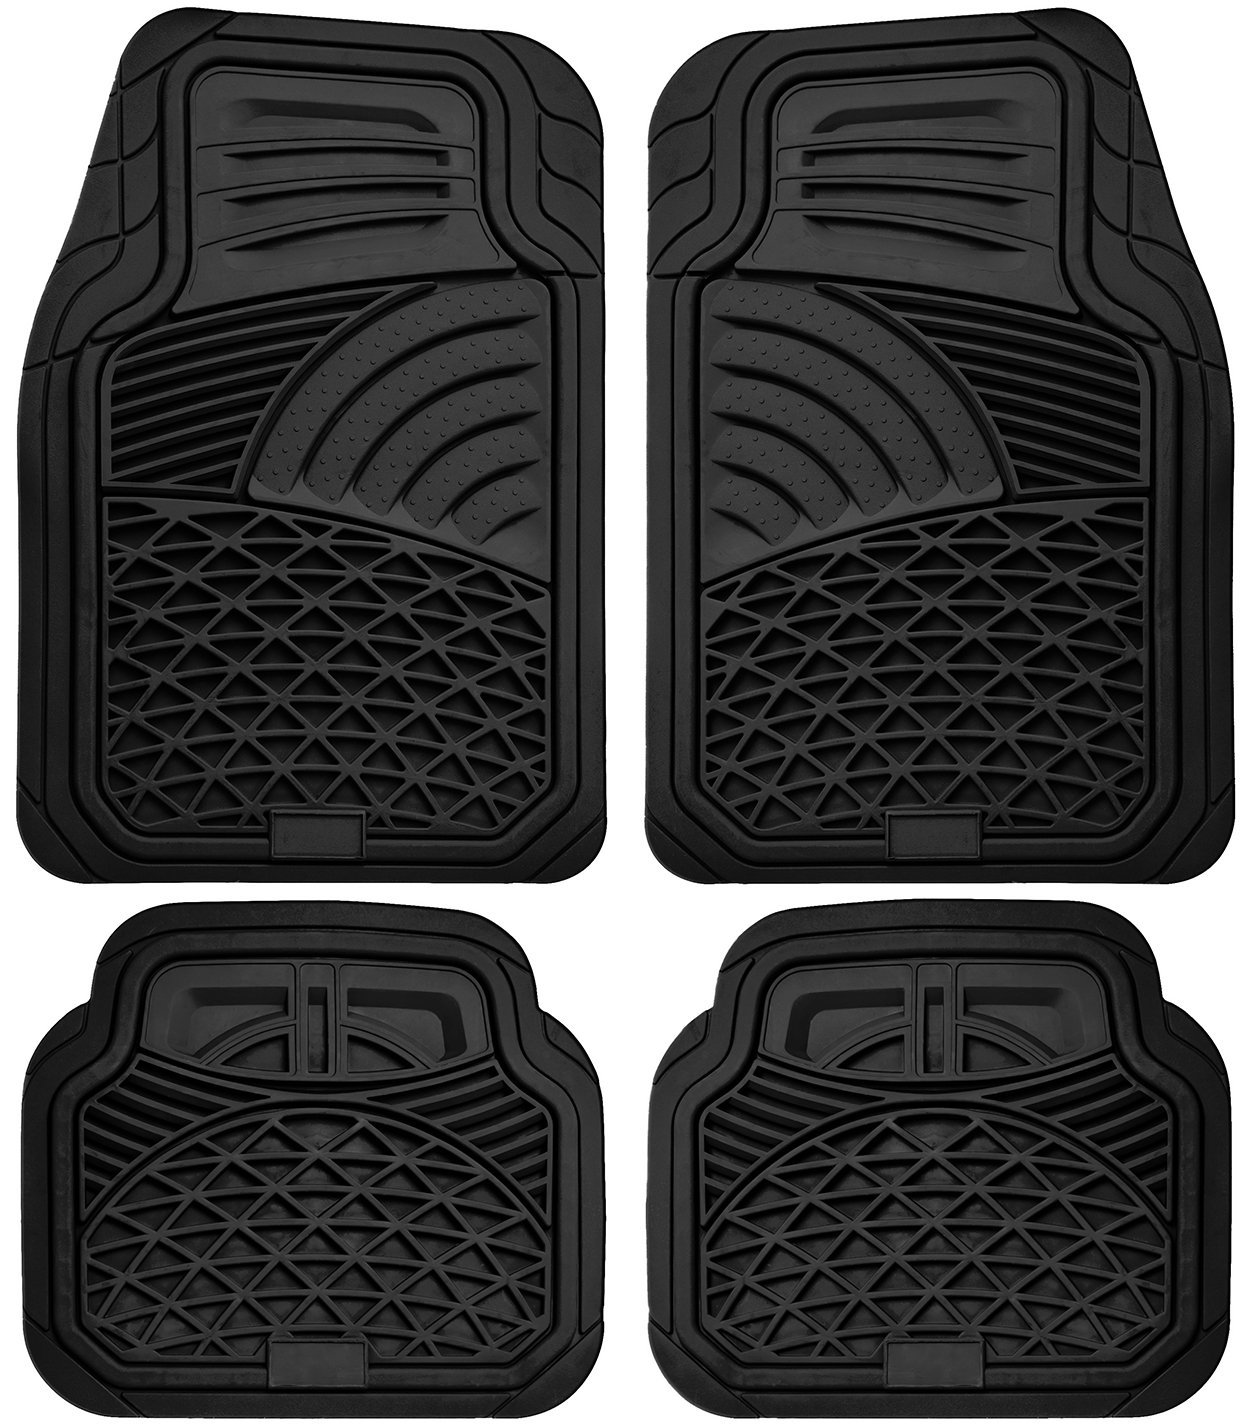 covers full seat colors seatsset cover seats car mats auto leather wool cushion set winter super product supplies warm